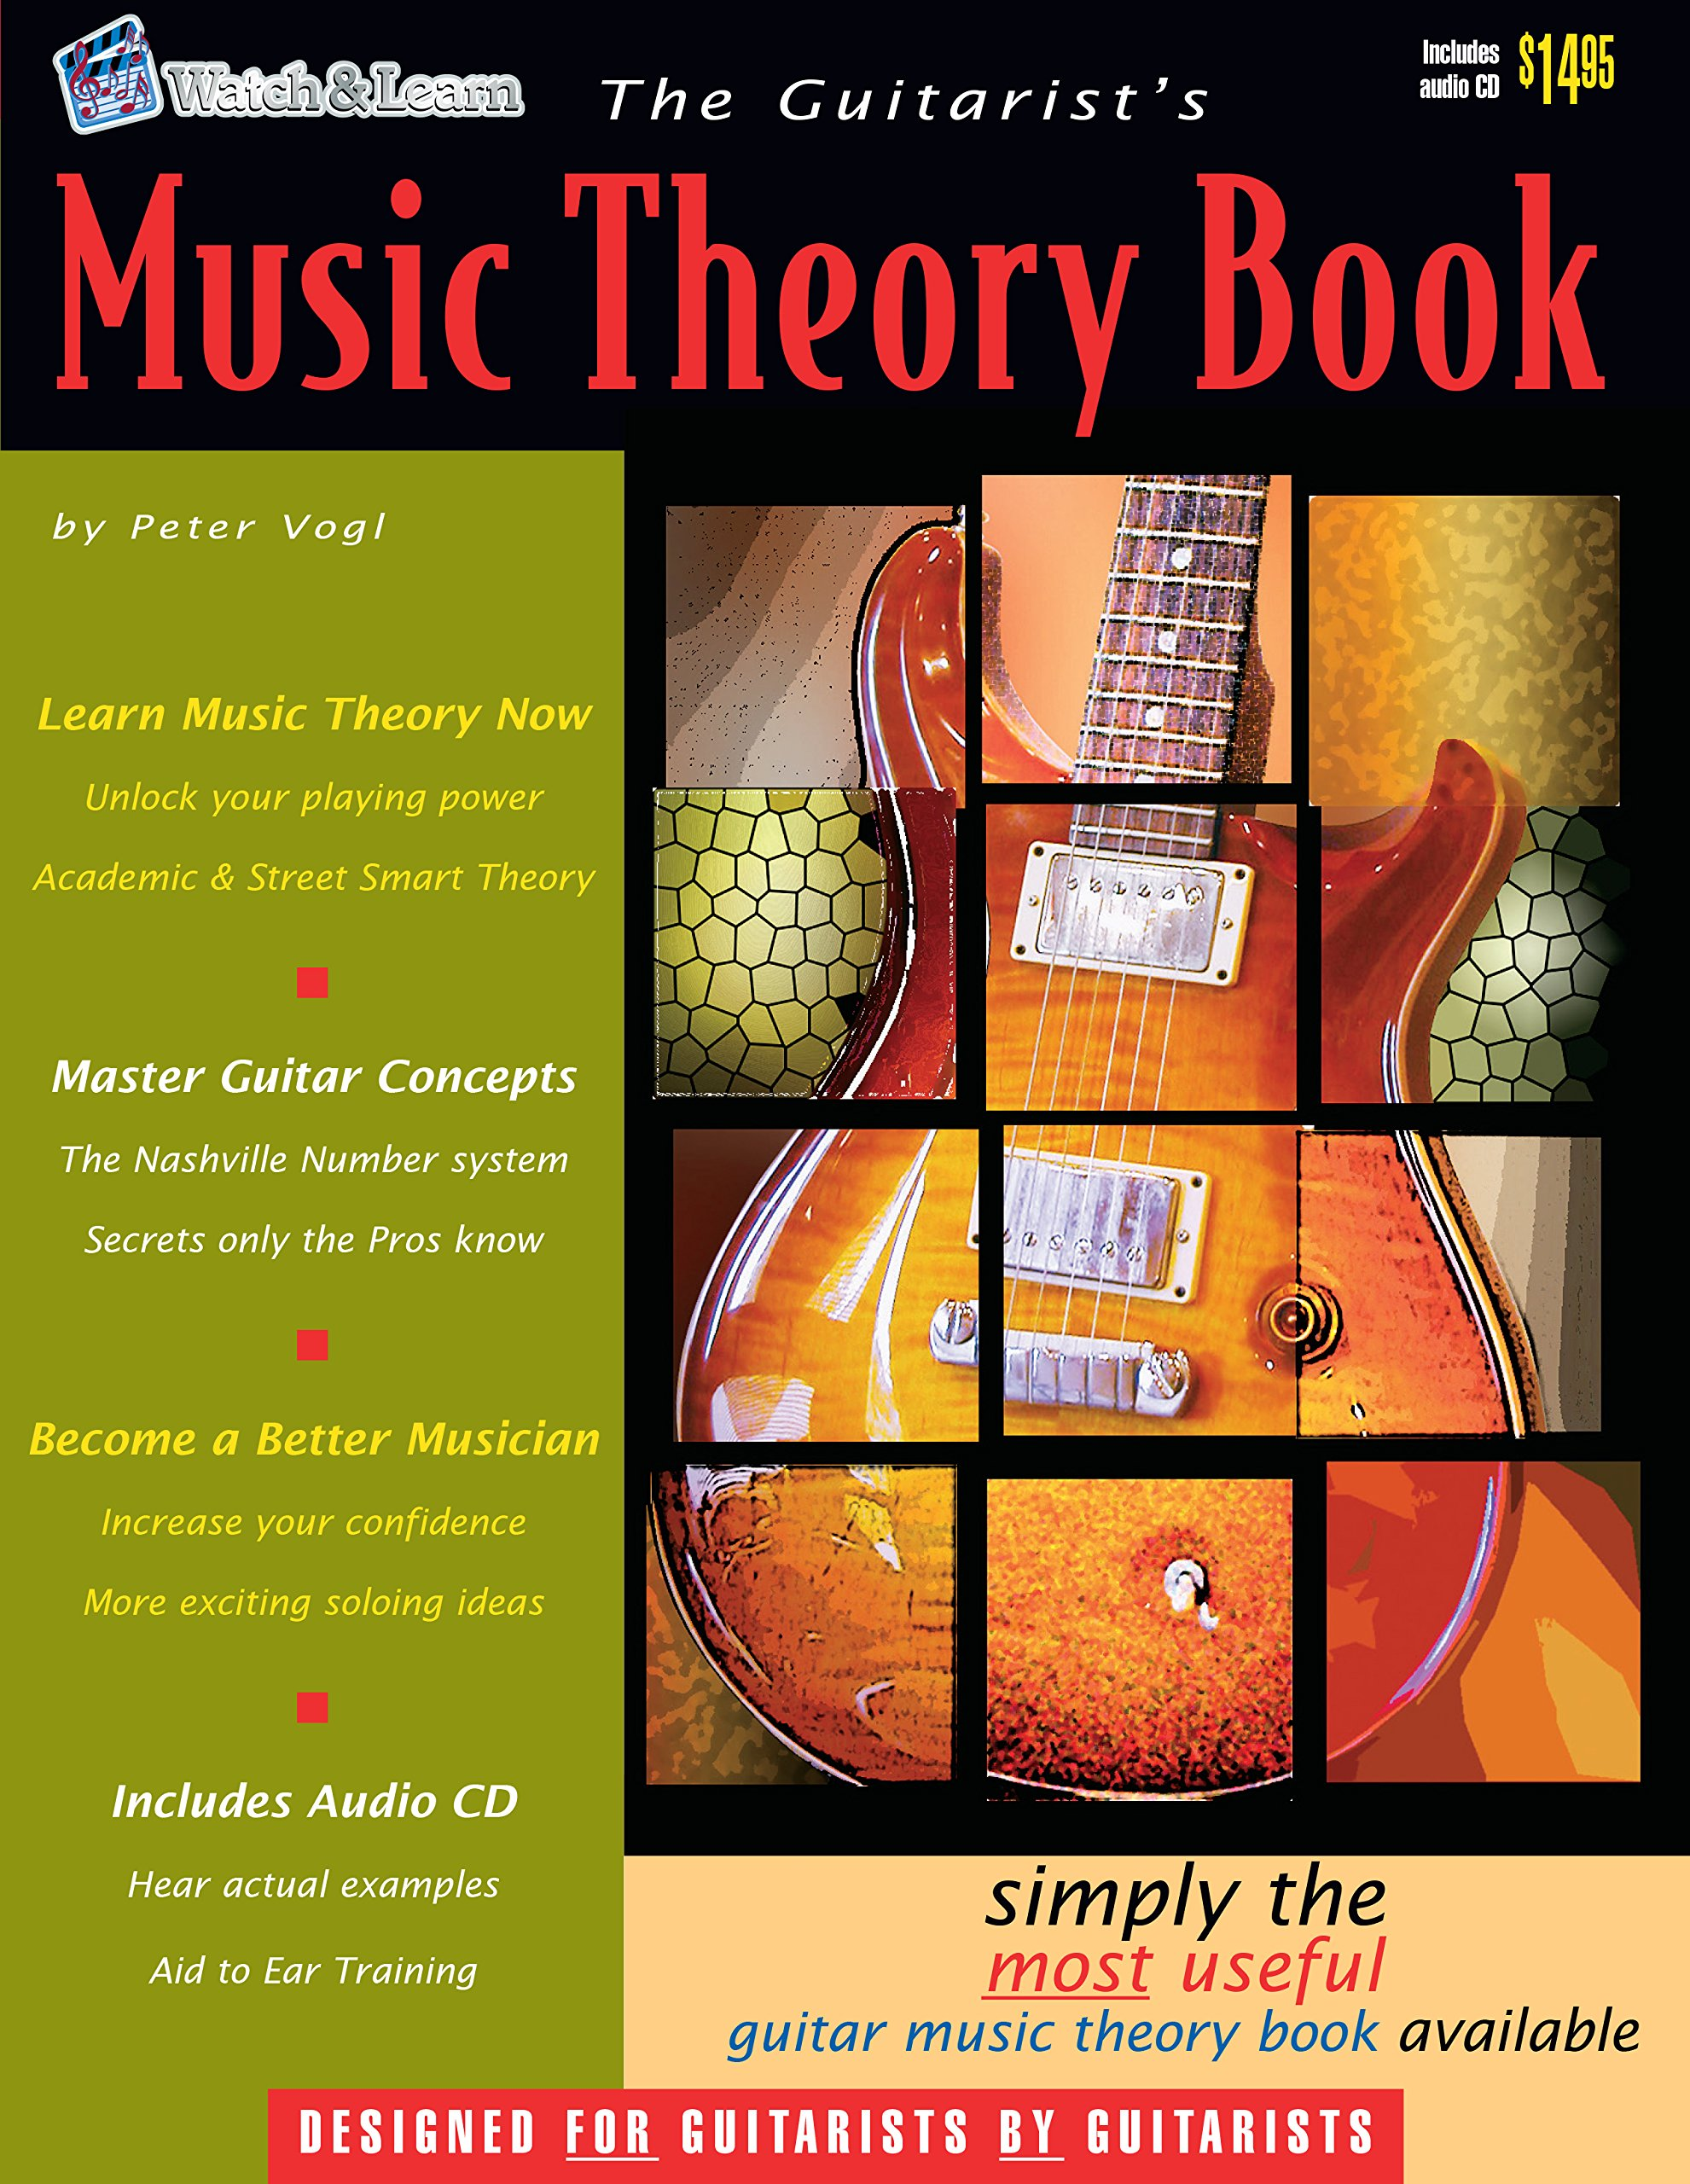 The Guitarists Music Theory Book The Most Useful Guitar Music